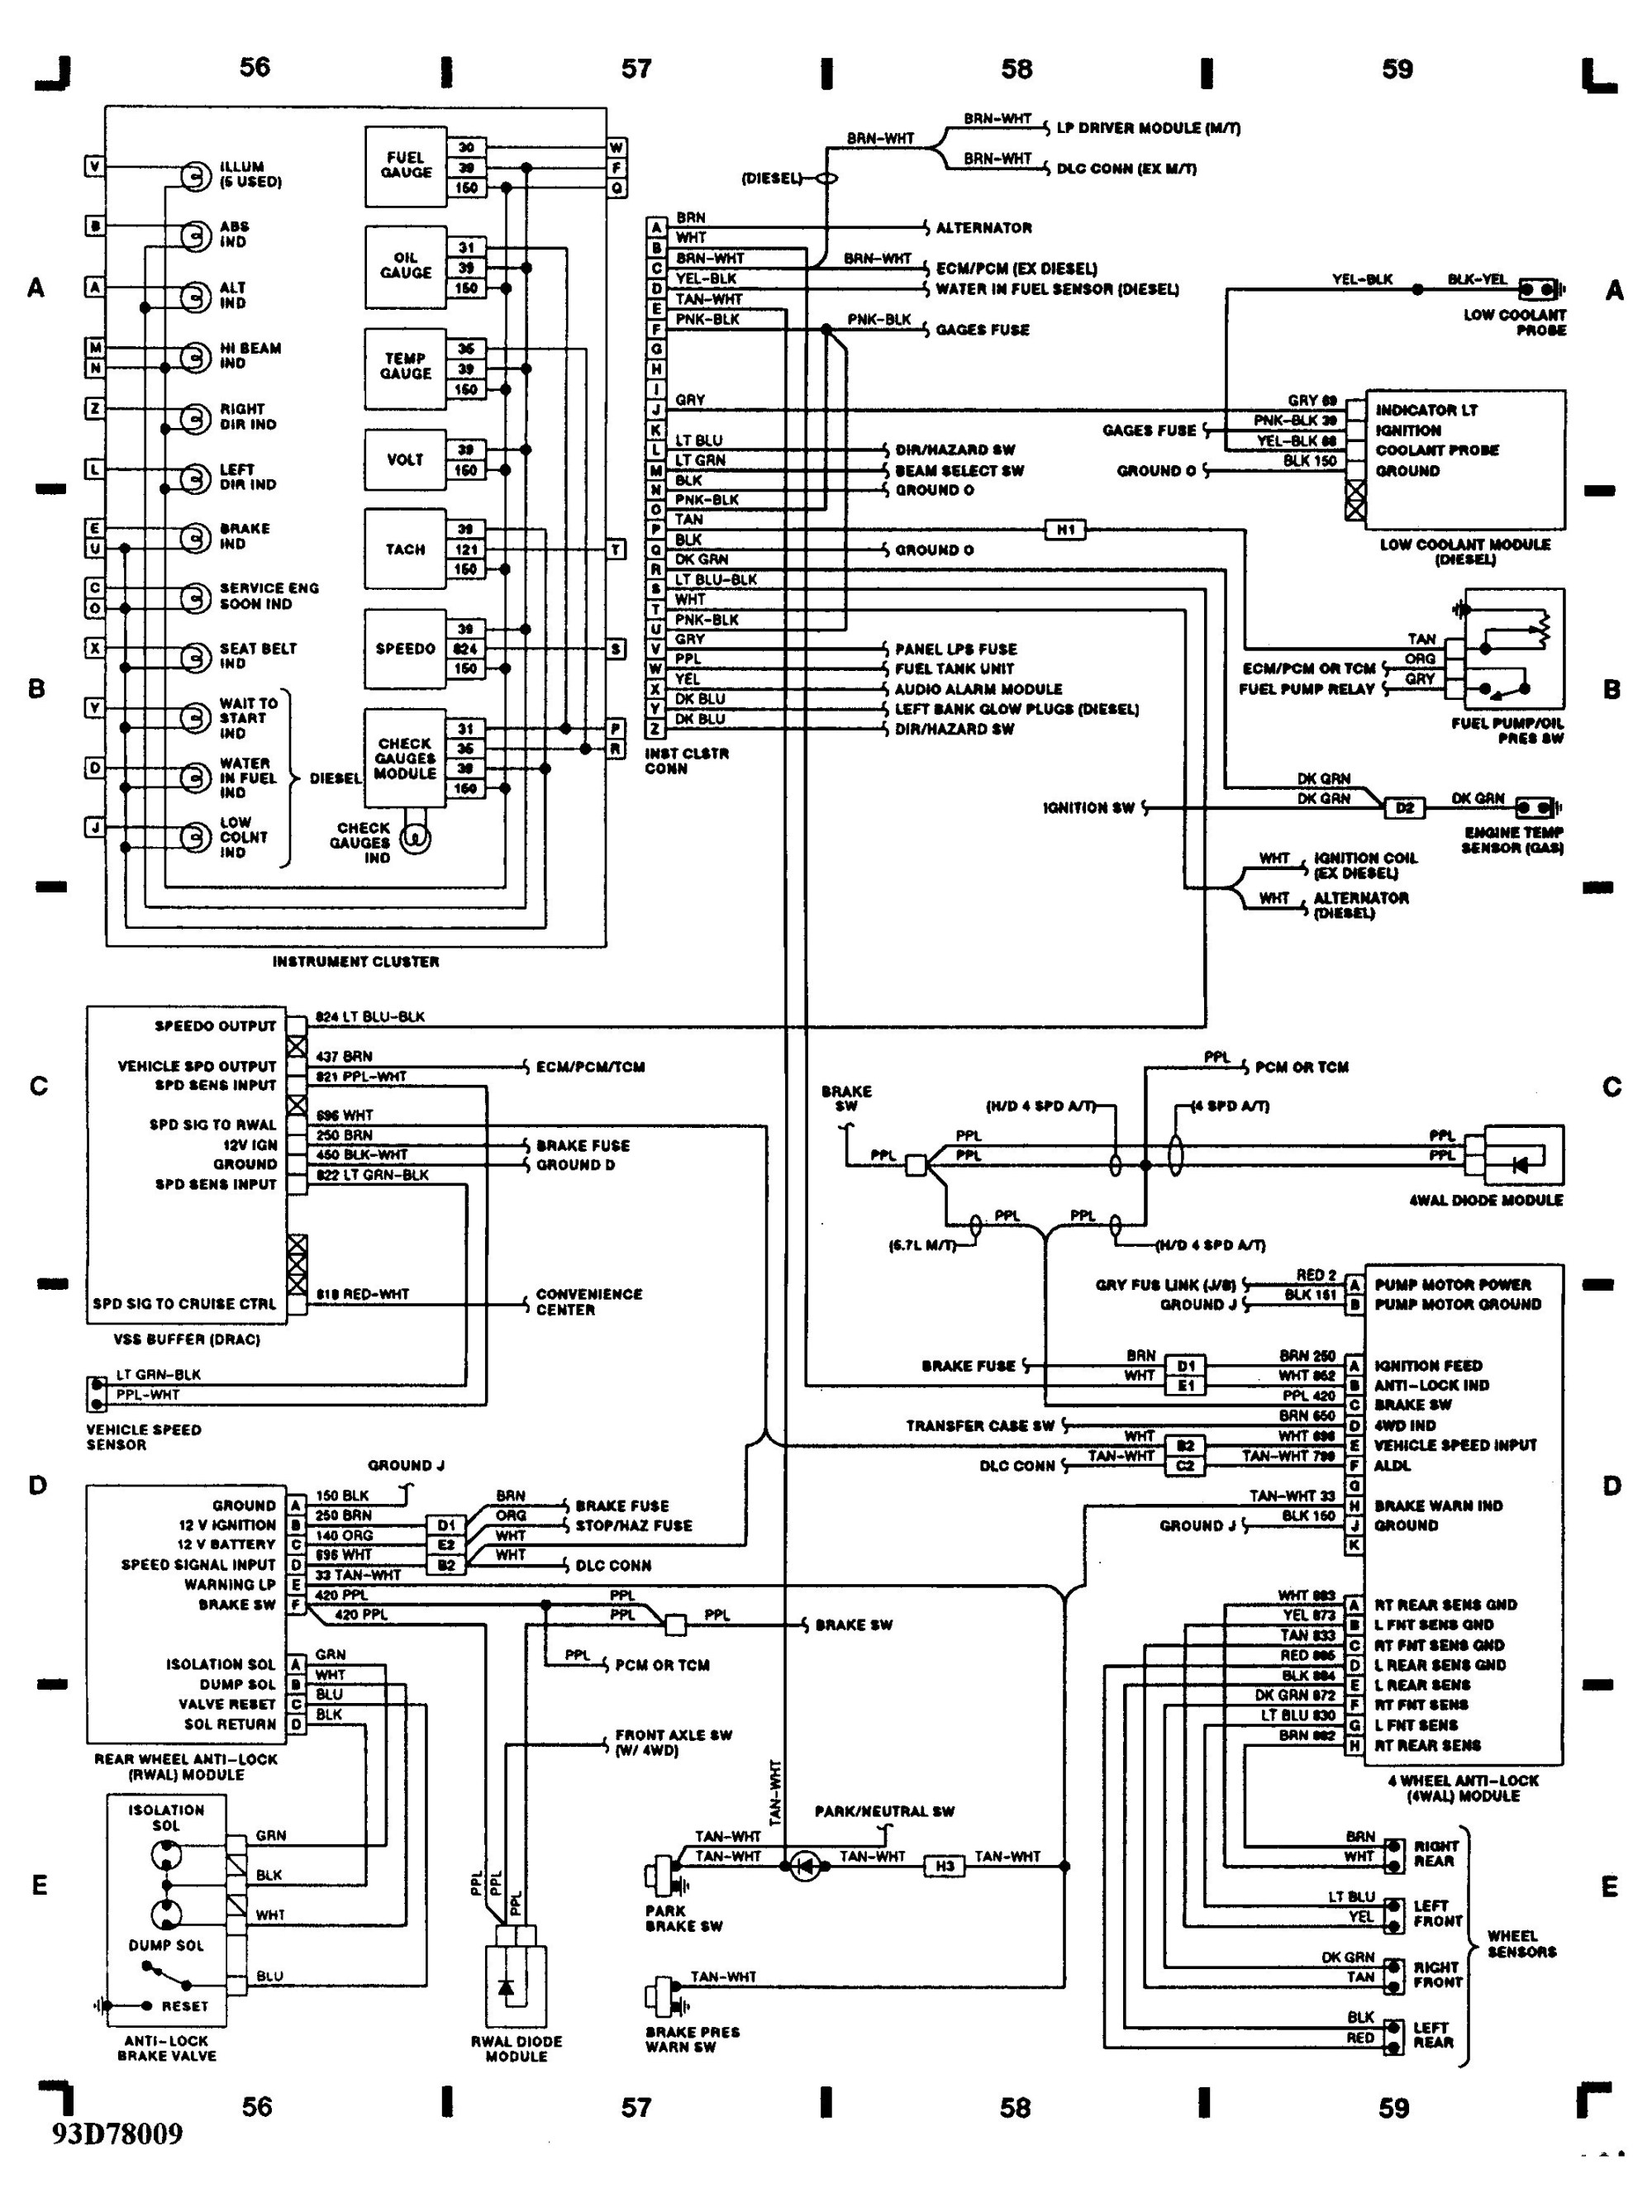 hight resolution of gm engine schematics wiring diagram datasource gm 3100 engine diagram gm 4 3 engine diagram wiring